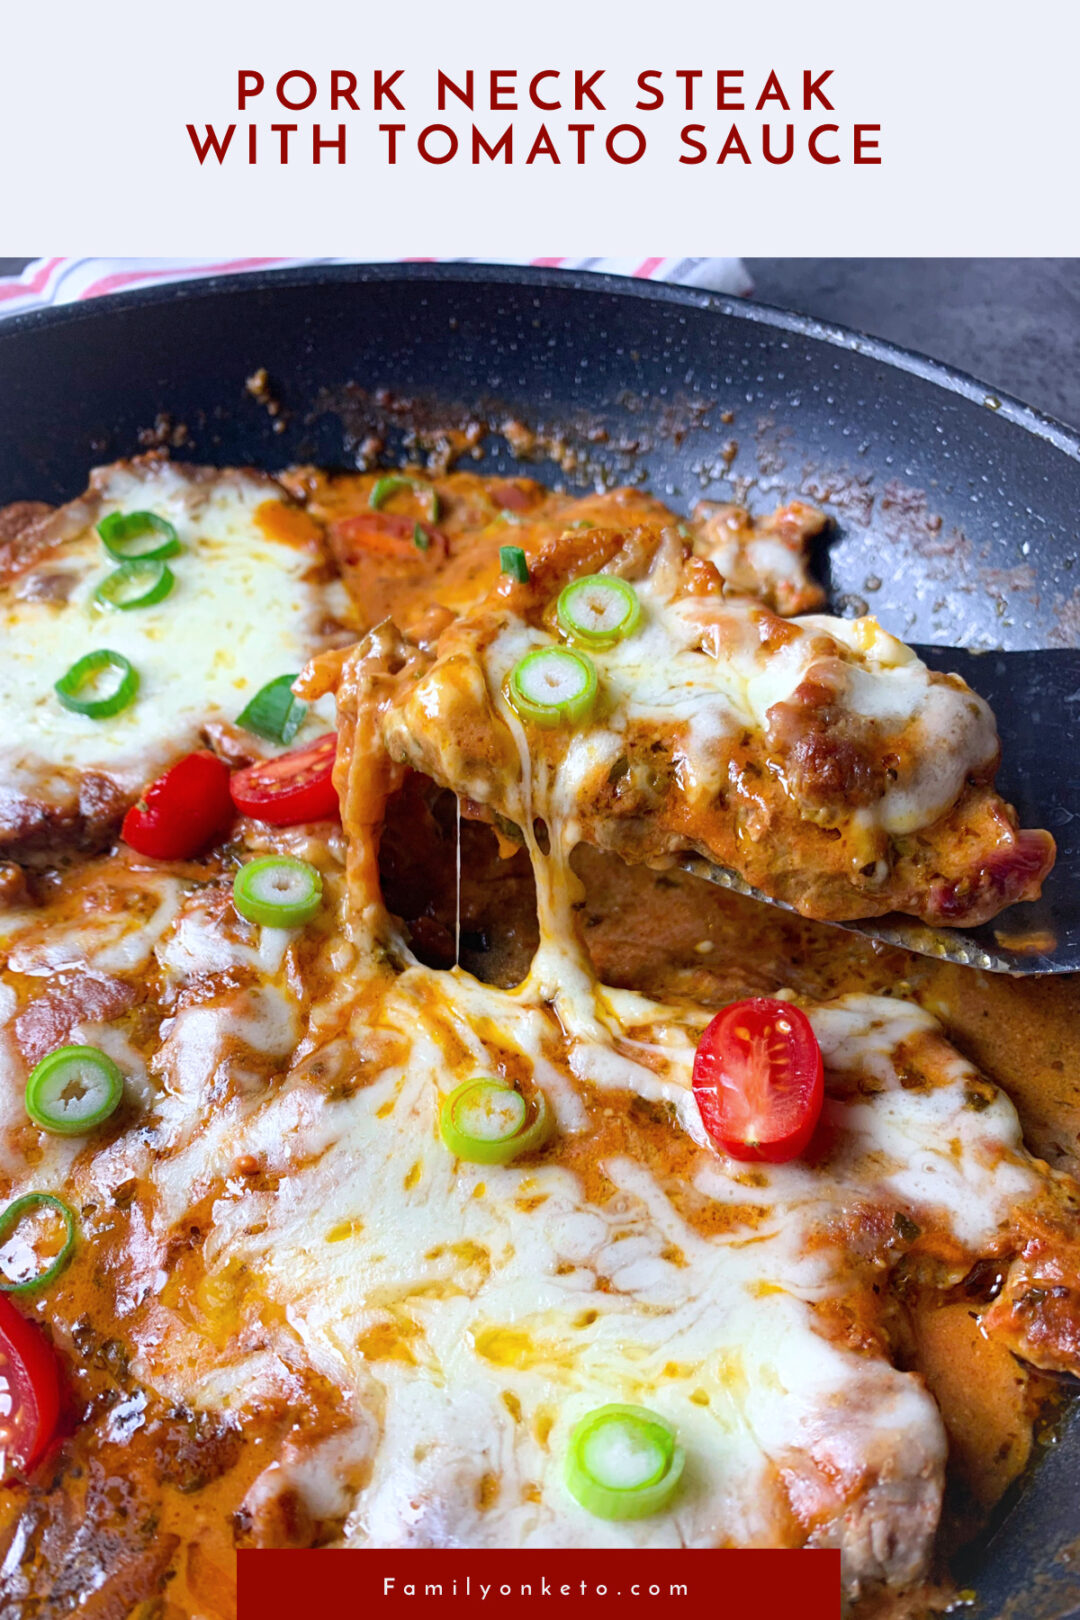 Pork neck steak with tomato sauce with melted mozzarella cooked in skillet